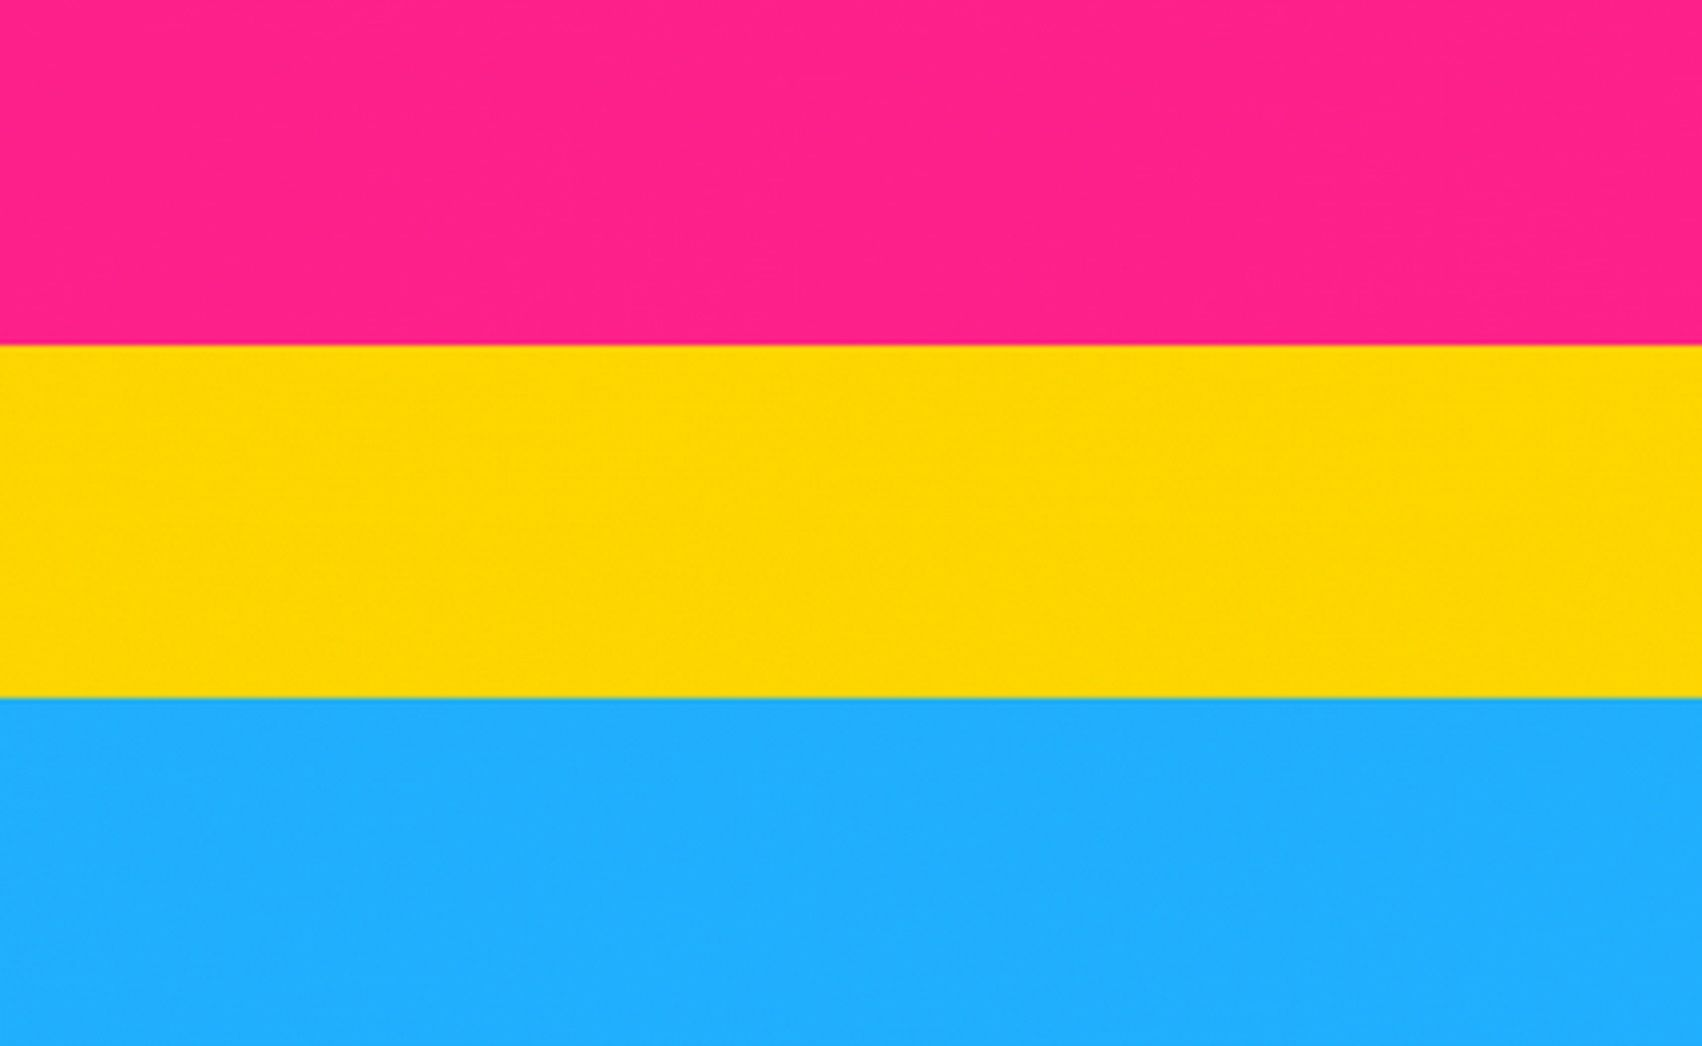 Panssexual flag